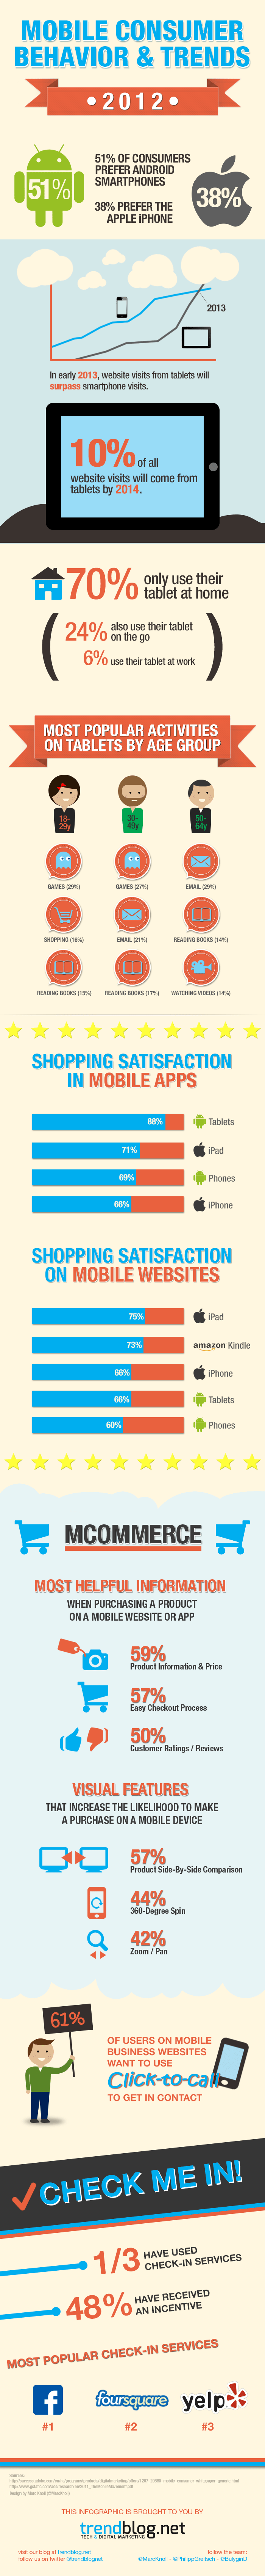 mobile-consumer-behavior-and-trends-2012_50a1603caeb62